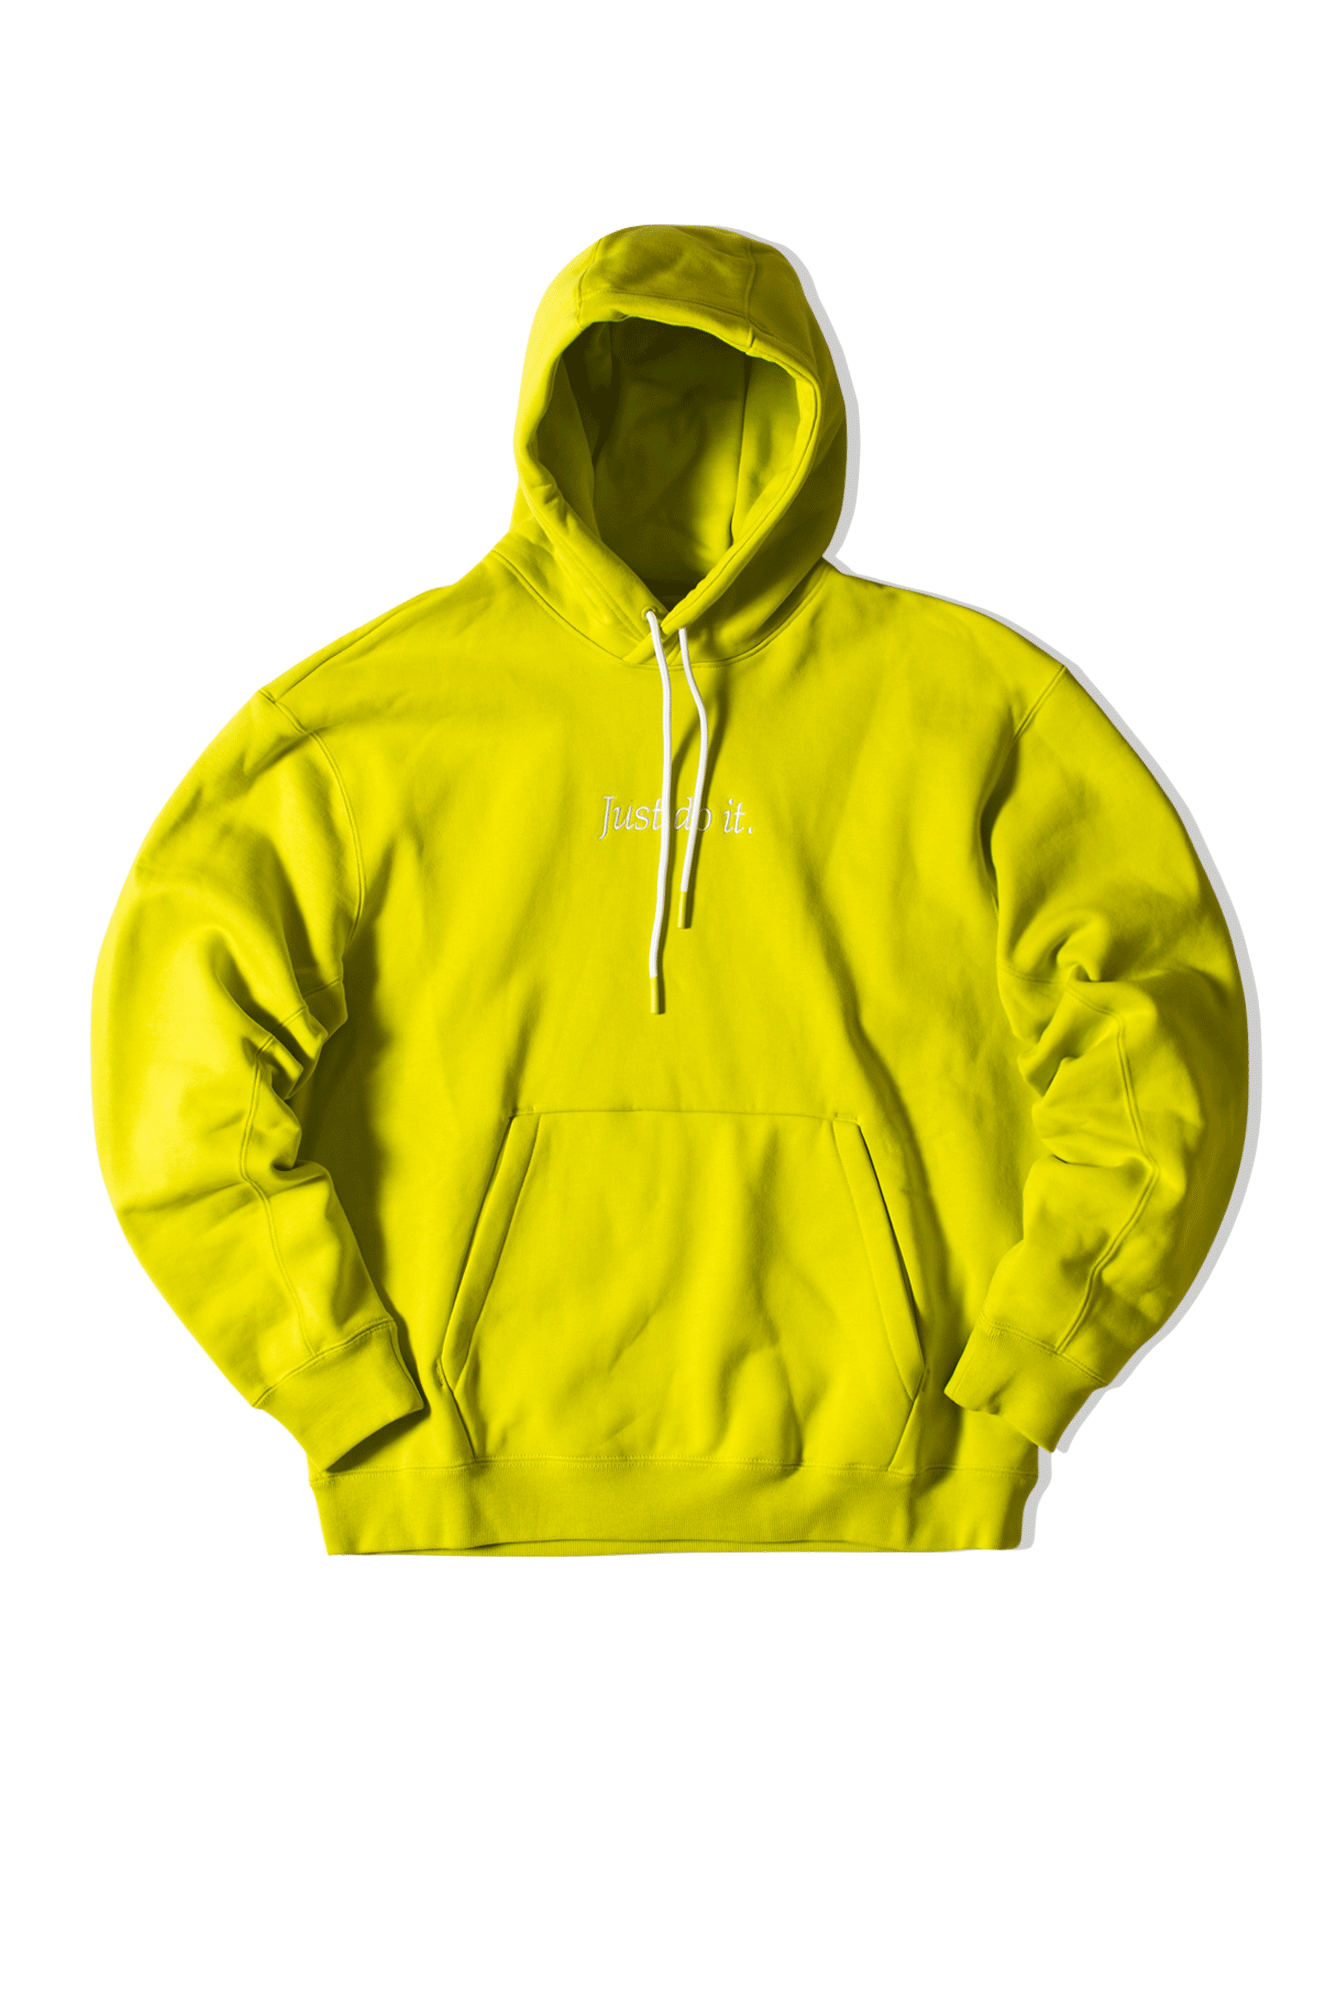 Just Do It Fleece Hoodie Yellow